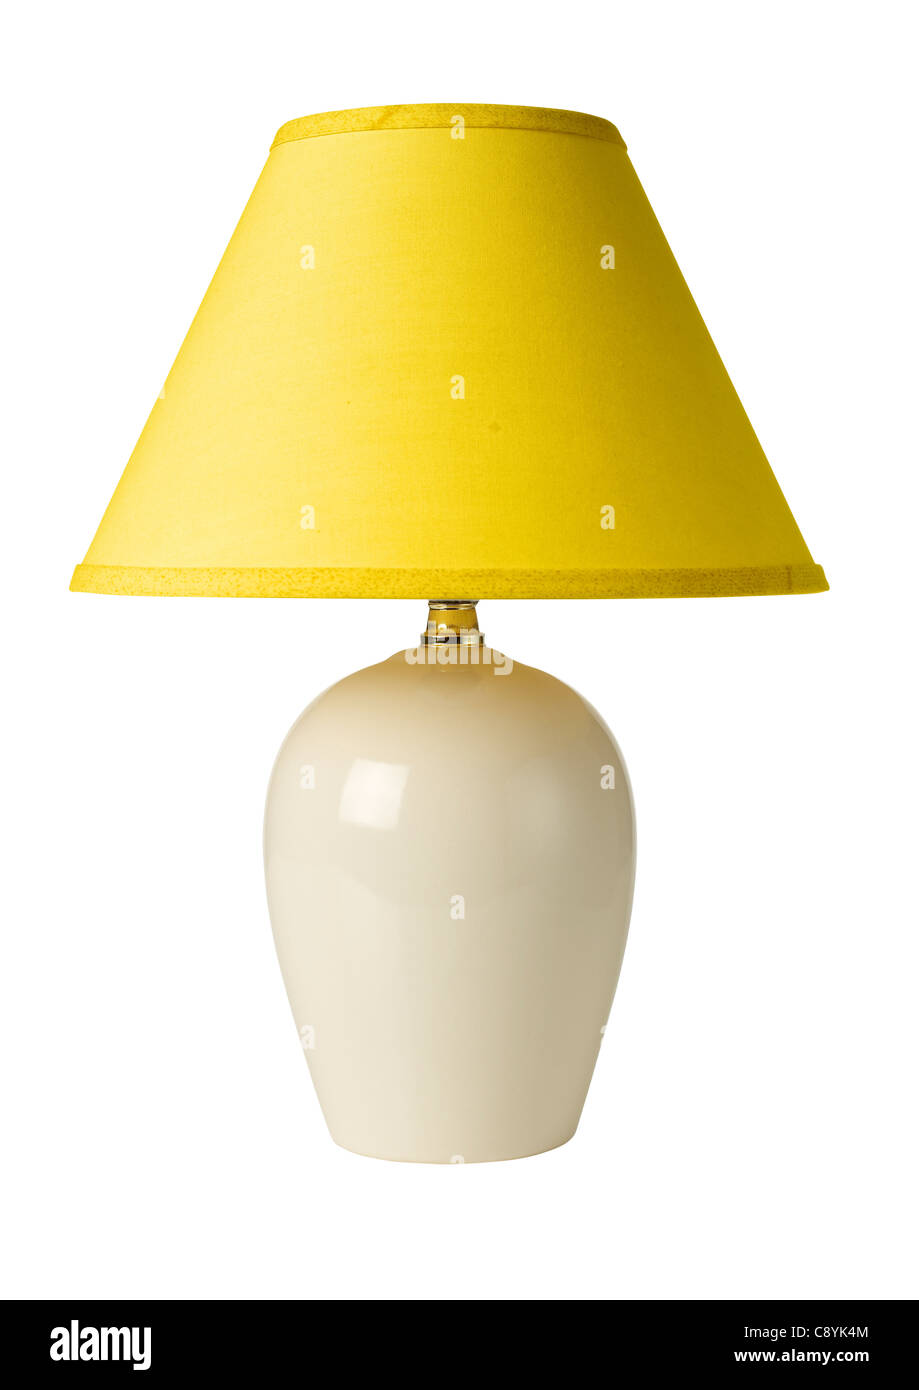 White ceramic lamp with yellow shade - Stock Image